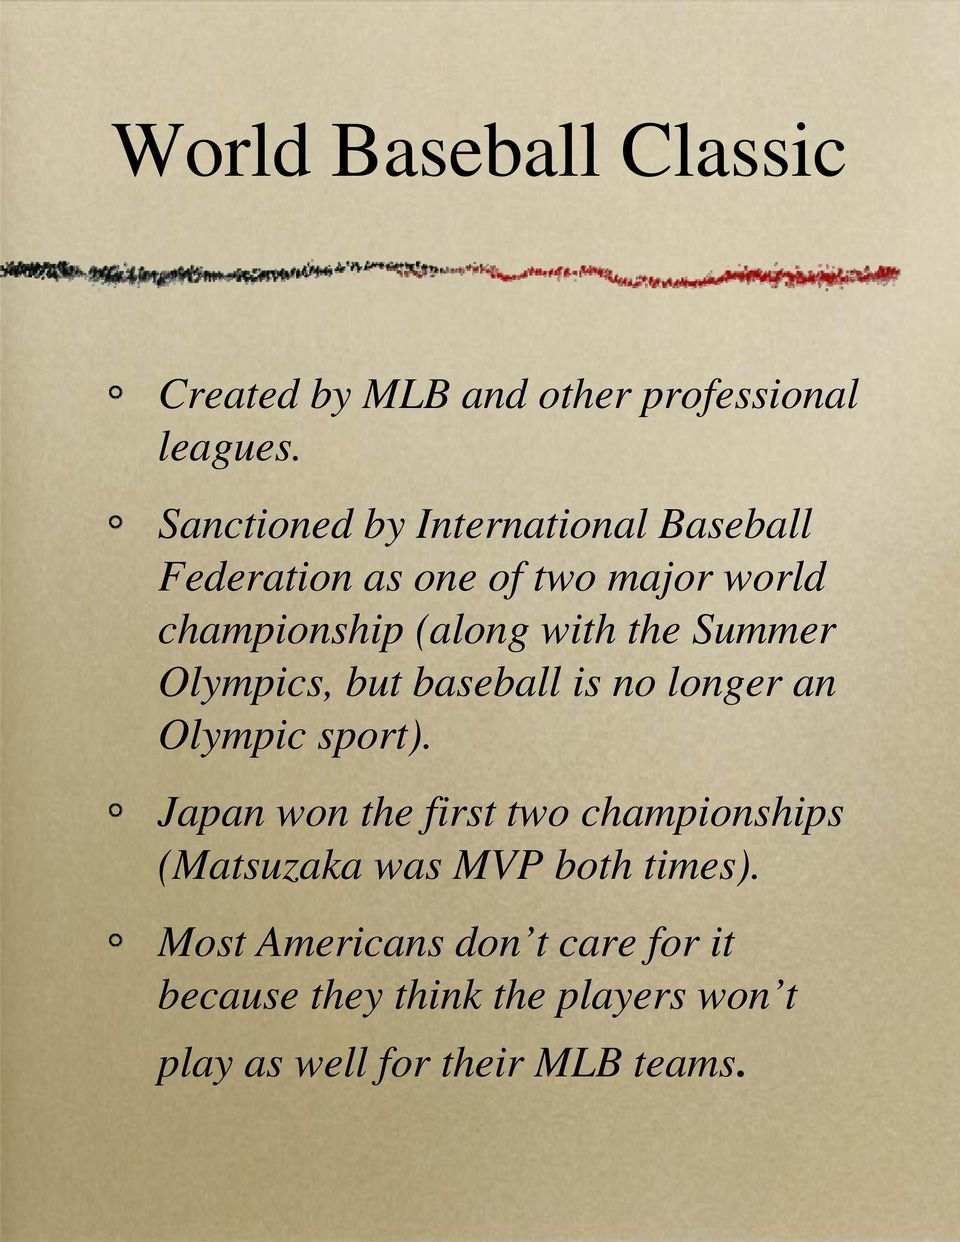 the Summer Olympics, but baseball is no longer an Olympic sport).